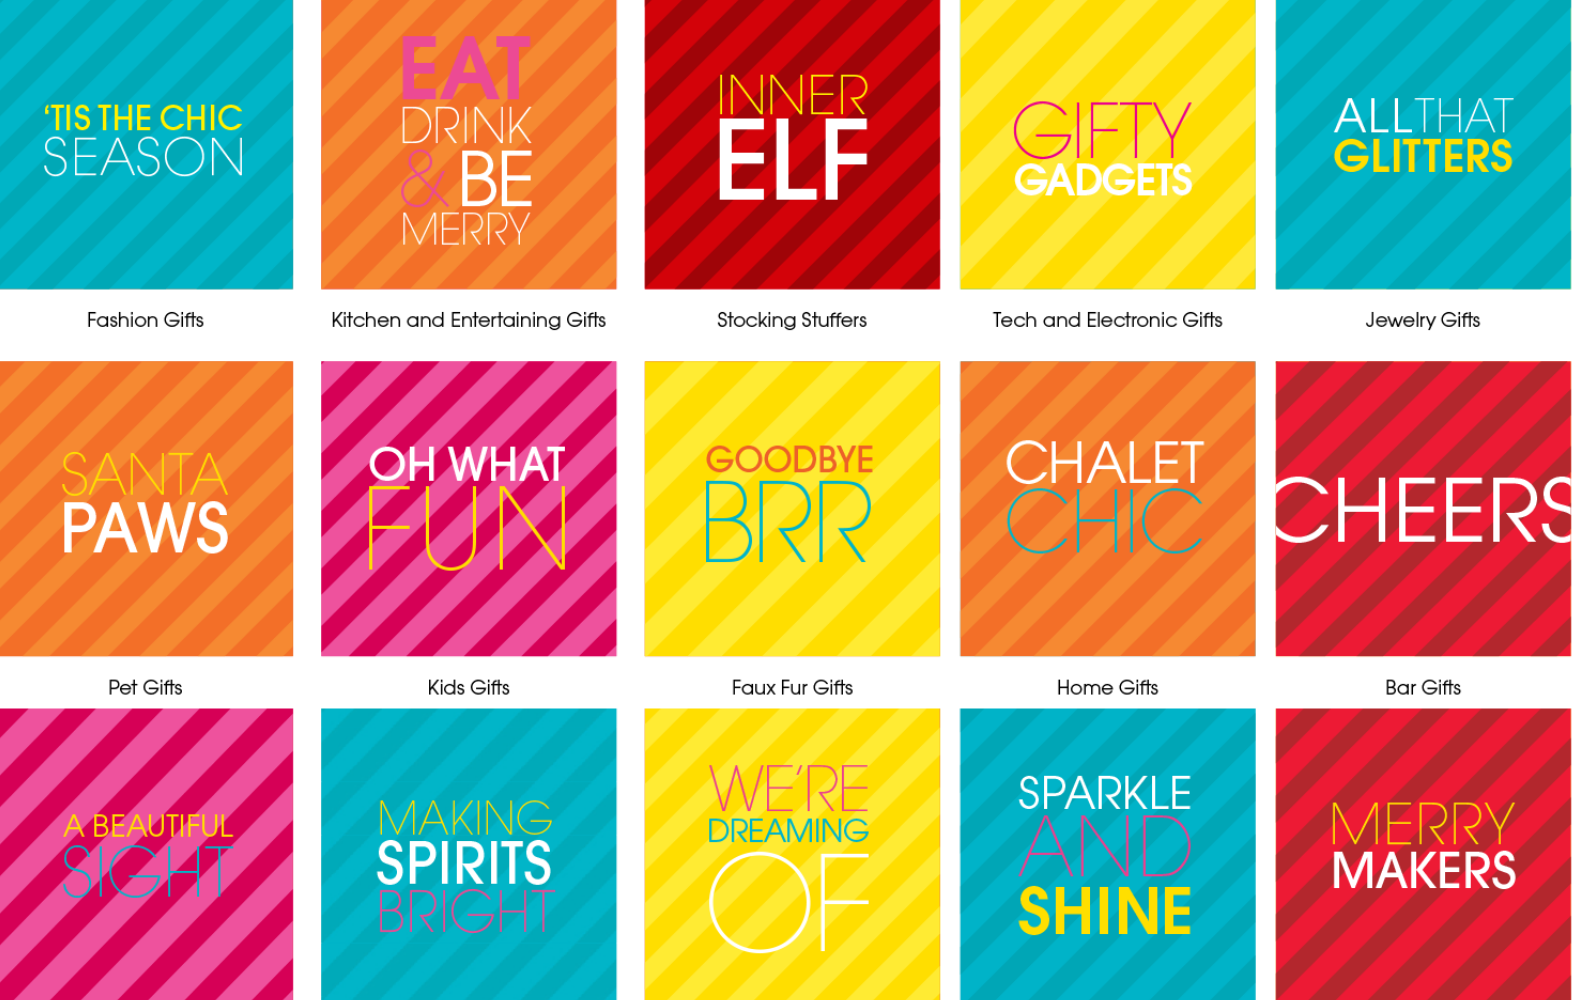 2013 Holiday Style Guide.9.20.13 22.png